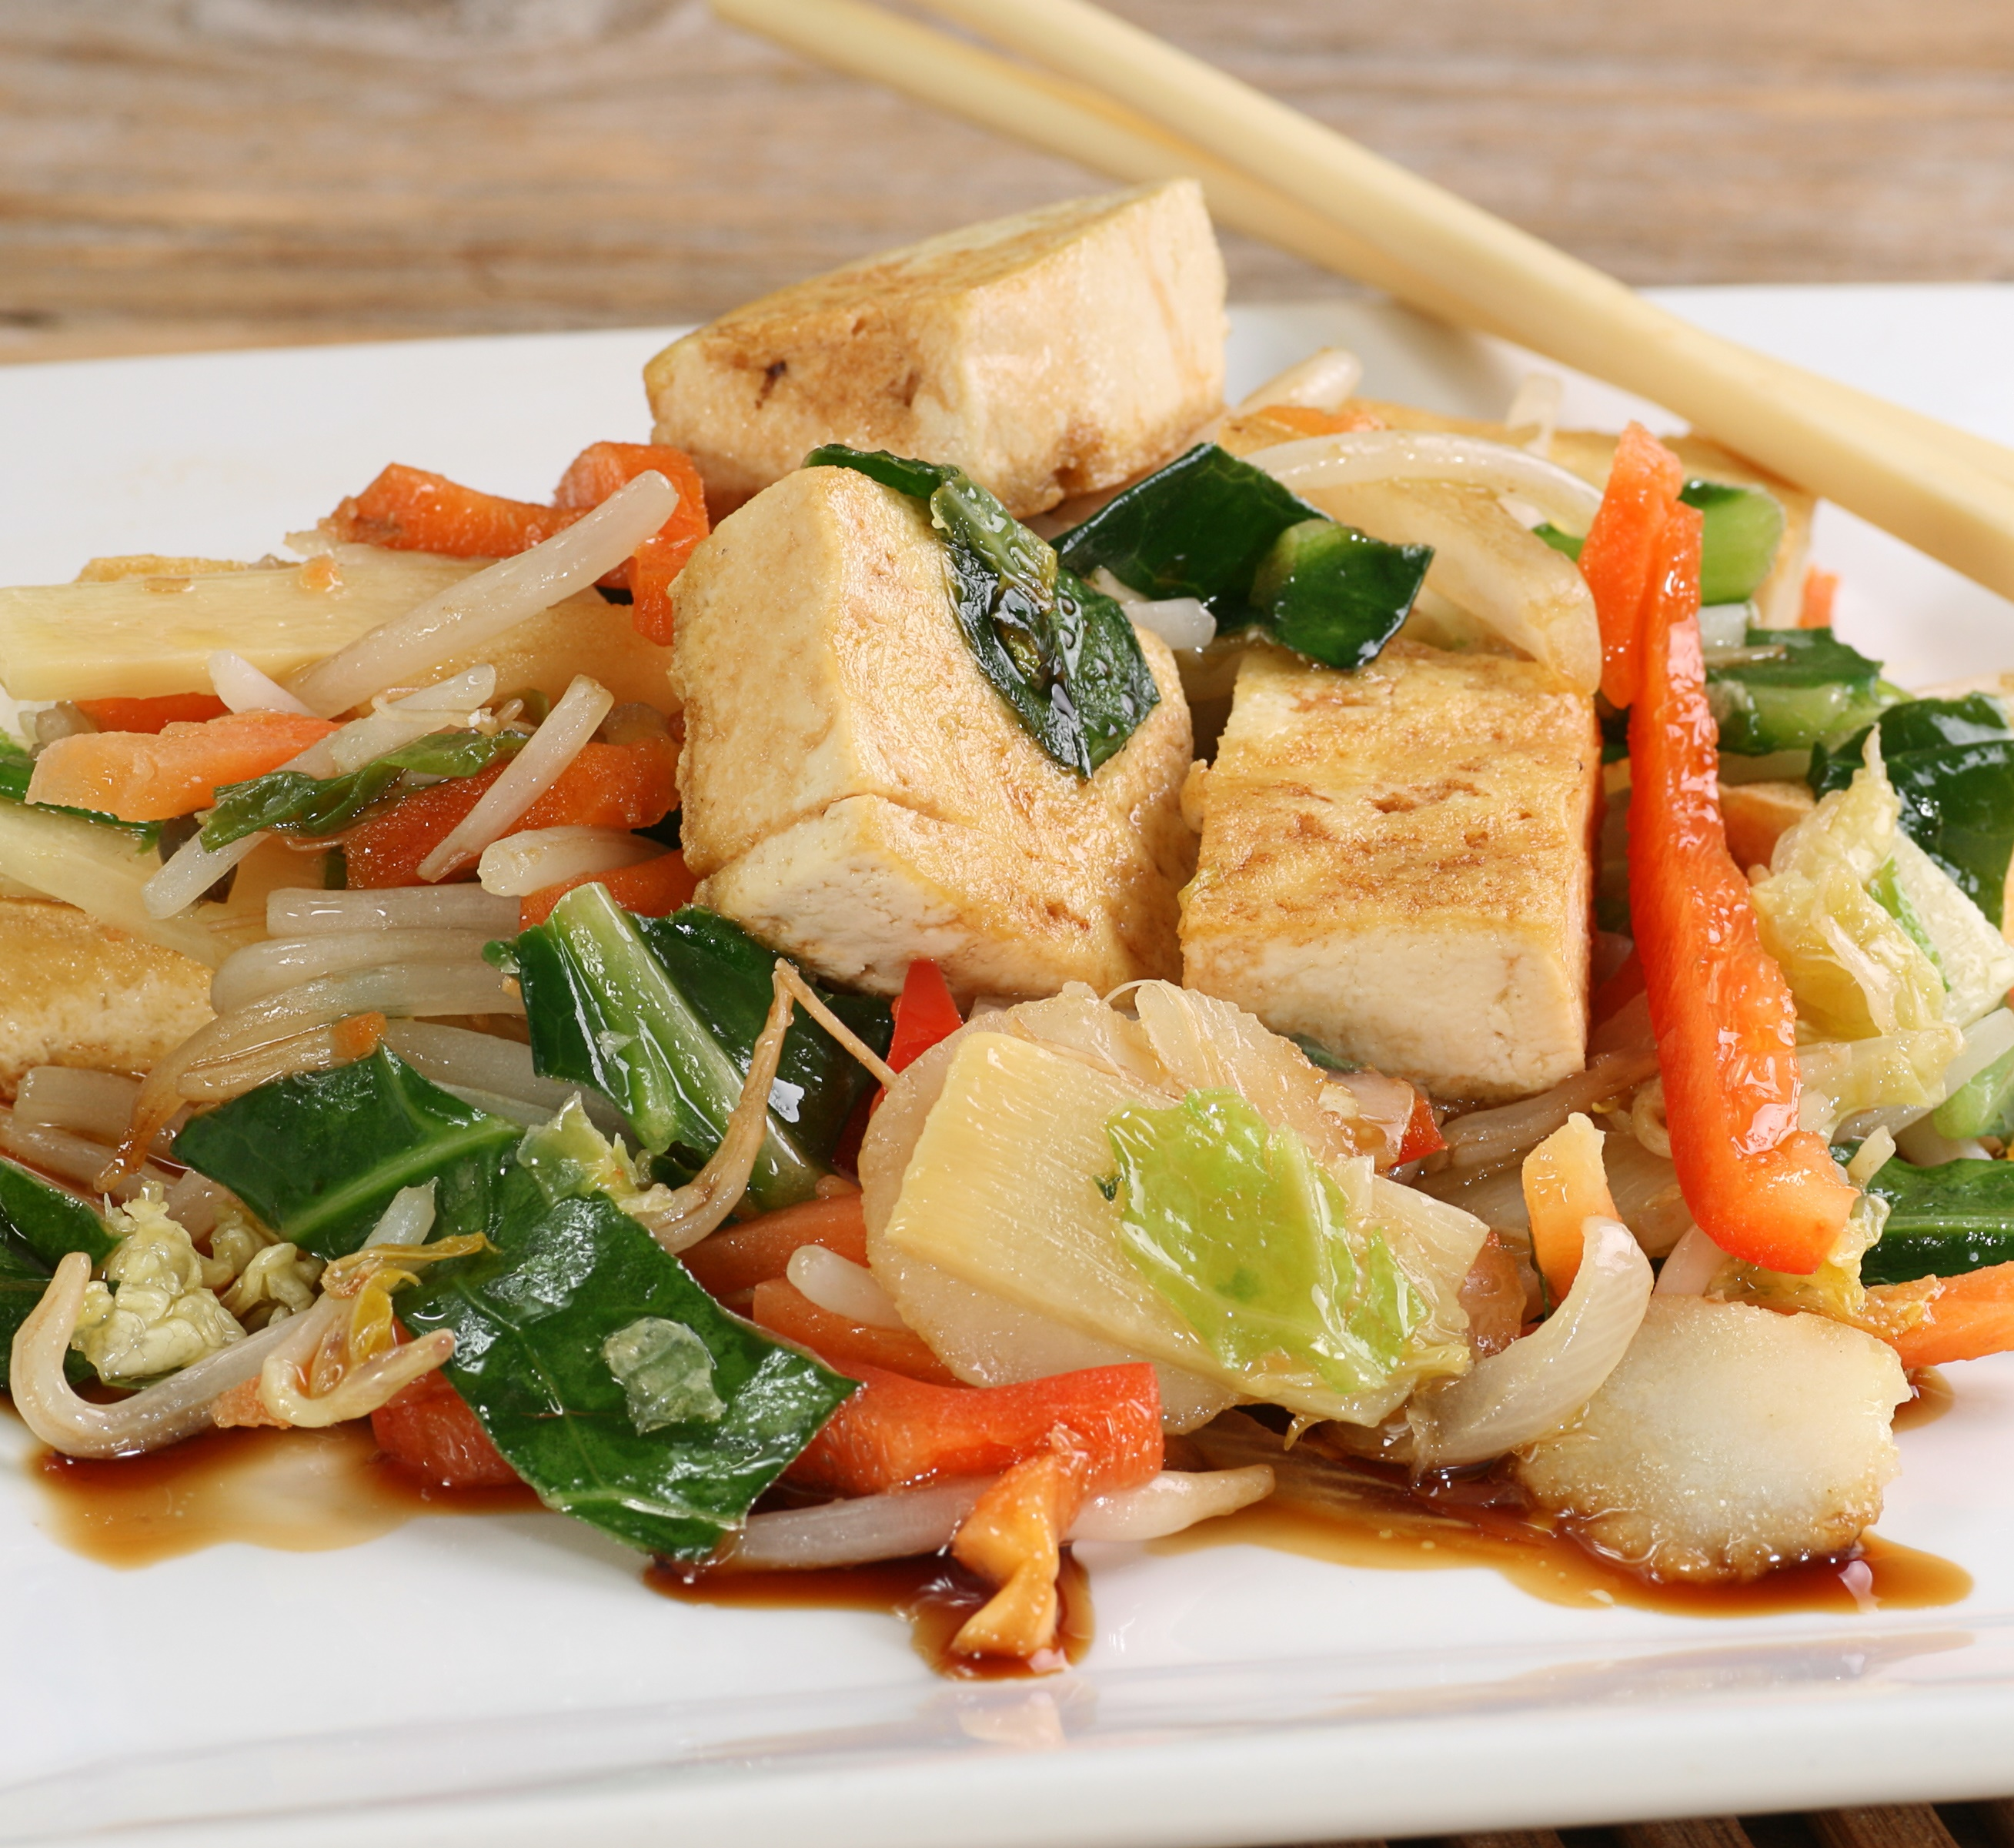 spicy tofu stir fry 5 reviews 4 6 100 % make again ready in 1 hour